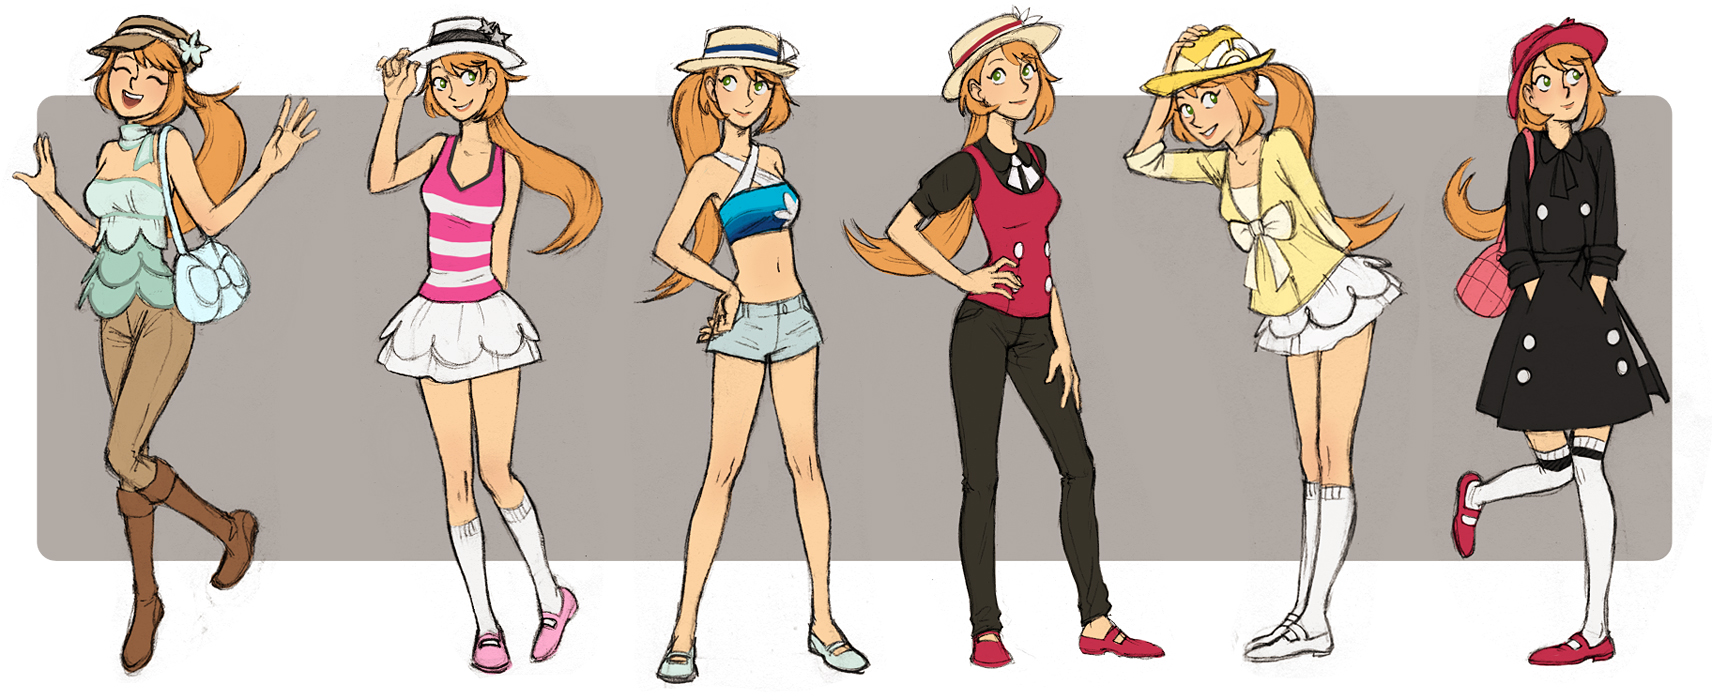 pokemon trainer xy deviantart